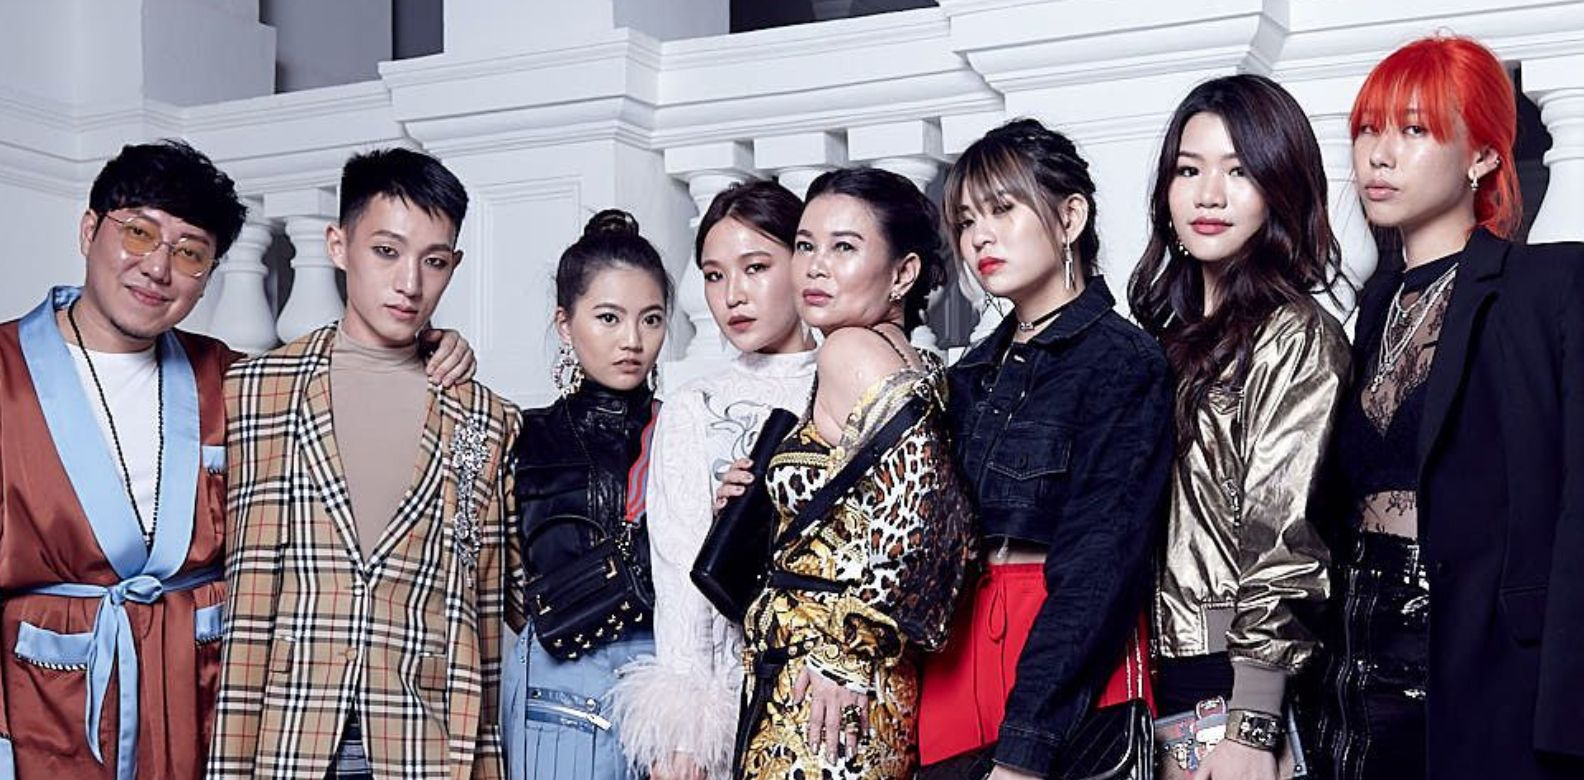 Desmond Lim in Christian Dada, Dyon Foo in Burberry, Vanessa Ng in Christian Dada; Rag & Bone, Dawn Koh in Prada, Susanna Kang in Versace, Sabrina Ho in Off-White and Area NYC, Adeline Teo in Louis Vuitton, Mae Tan in Off-White